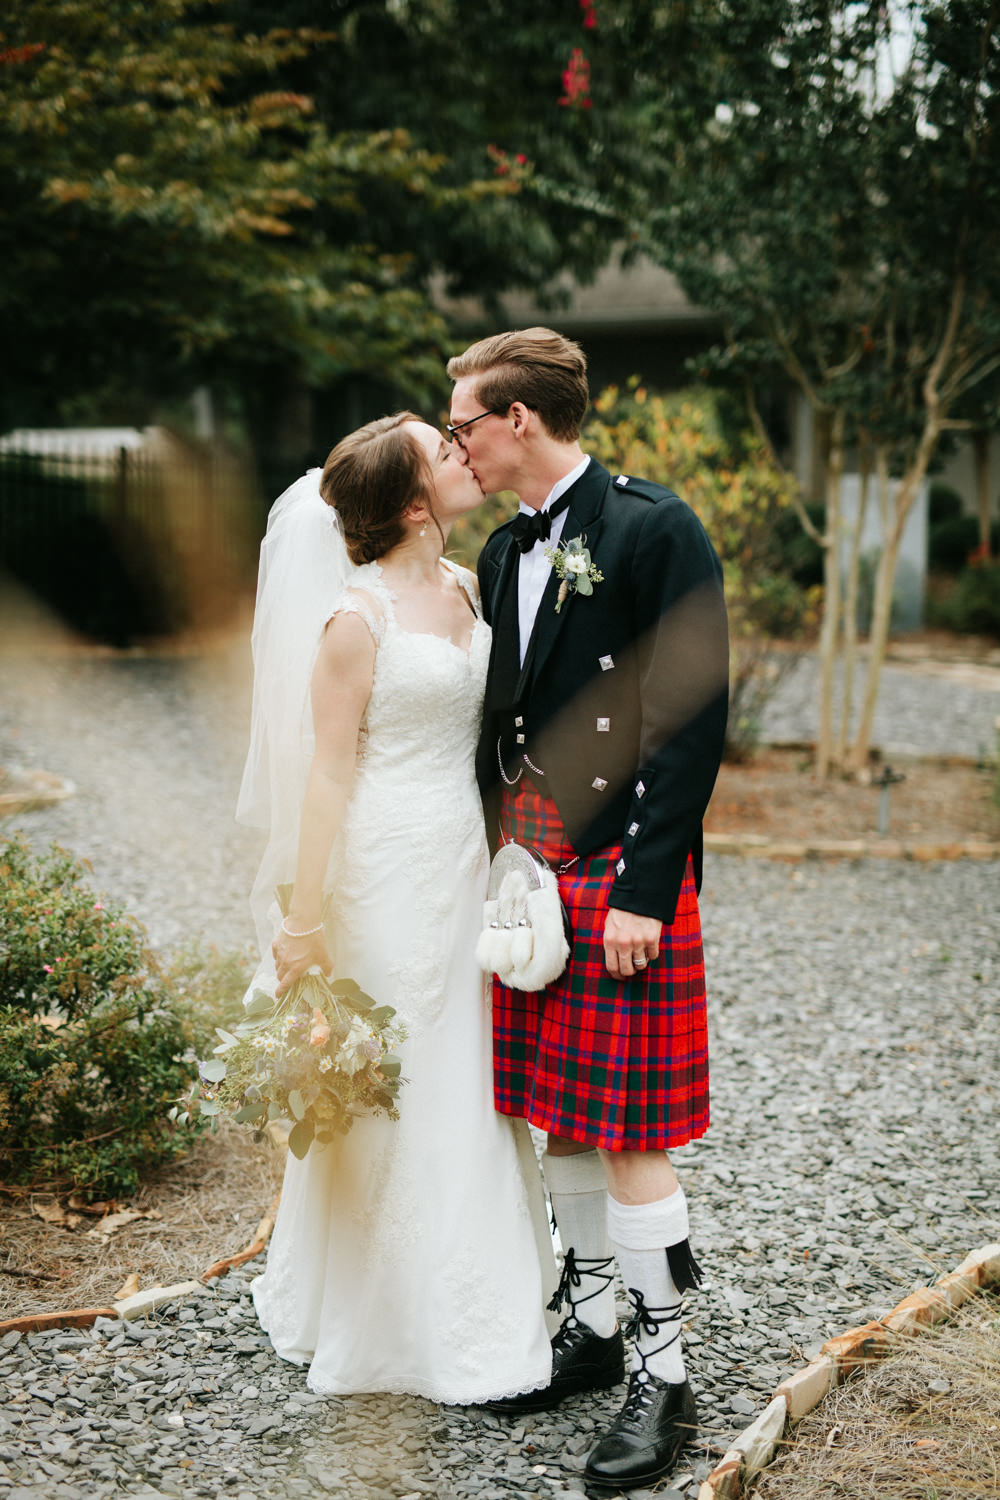 scottishwedding-2061.jpg